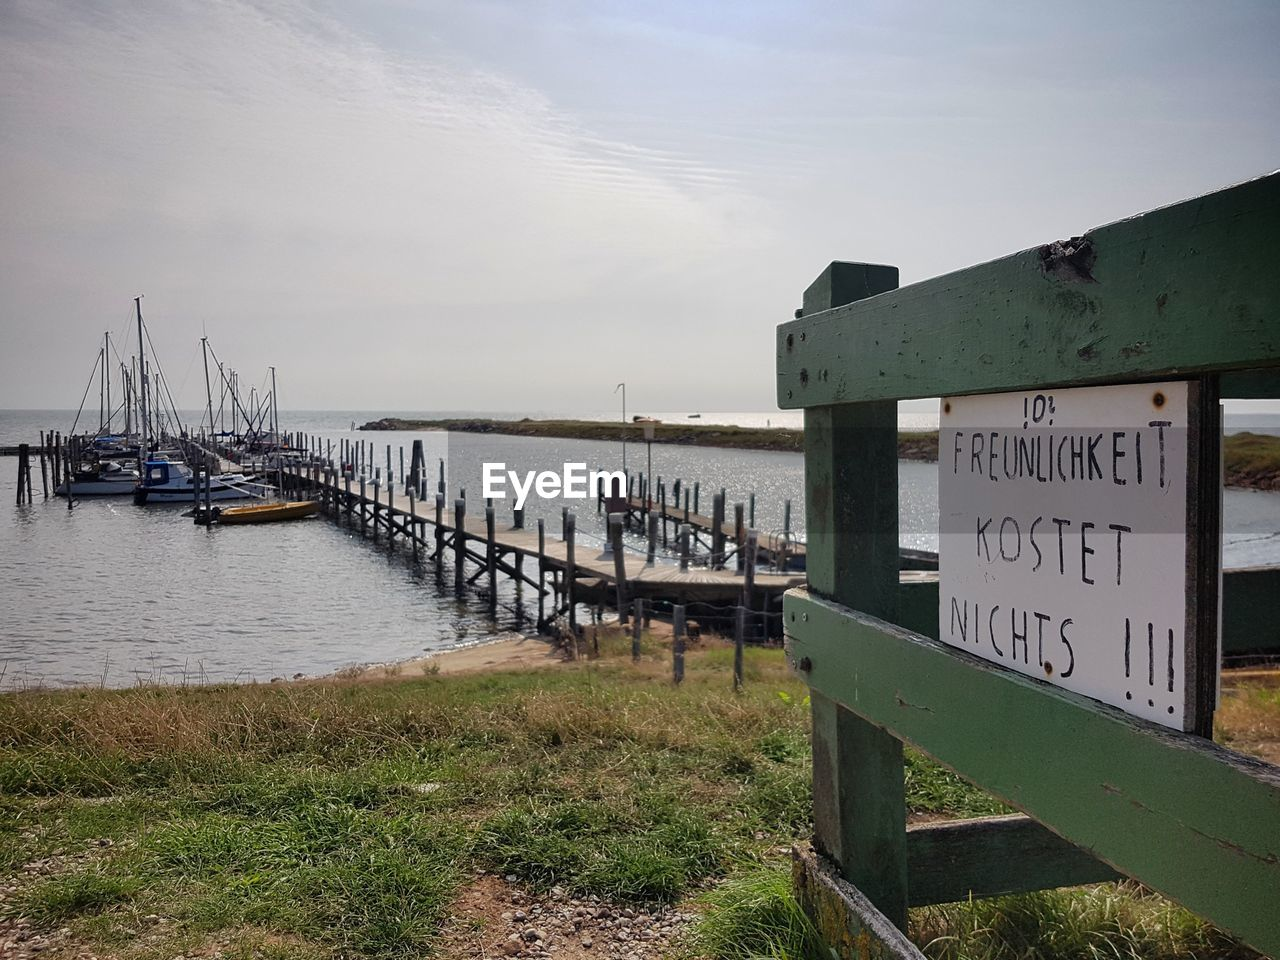 water, sky, communication, nature, text, sign, nautical vessel, day, land, transportation, no people, western script, sea, pier, wood - material, architecture, beach, information, built structure, outdoors